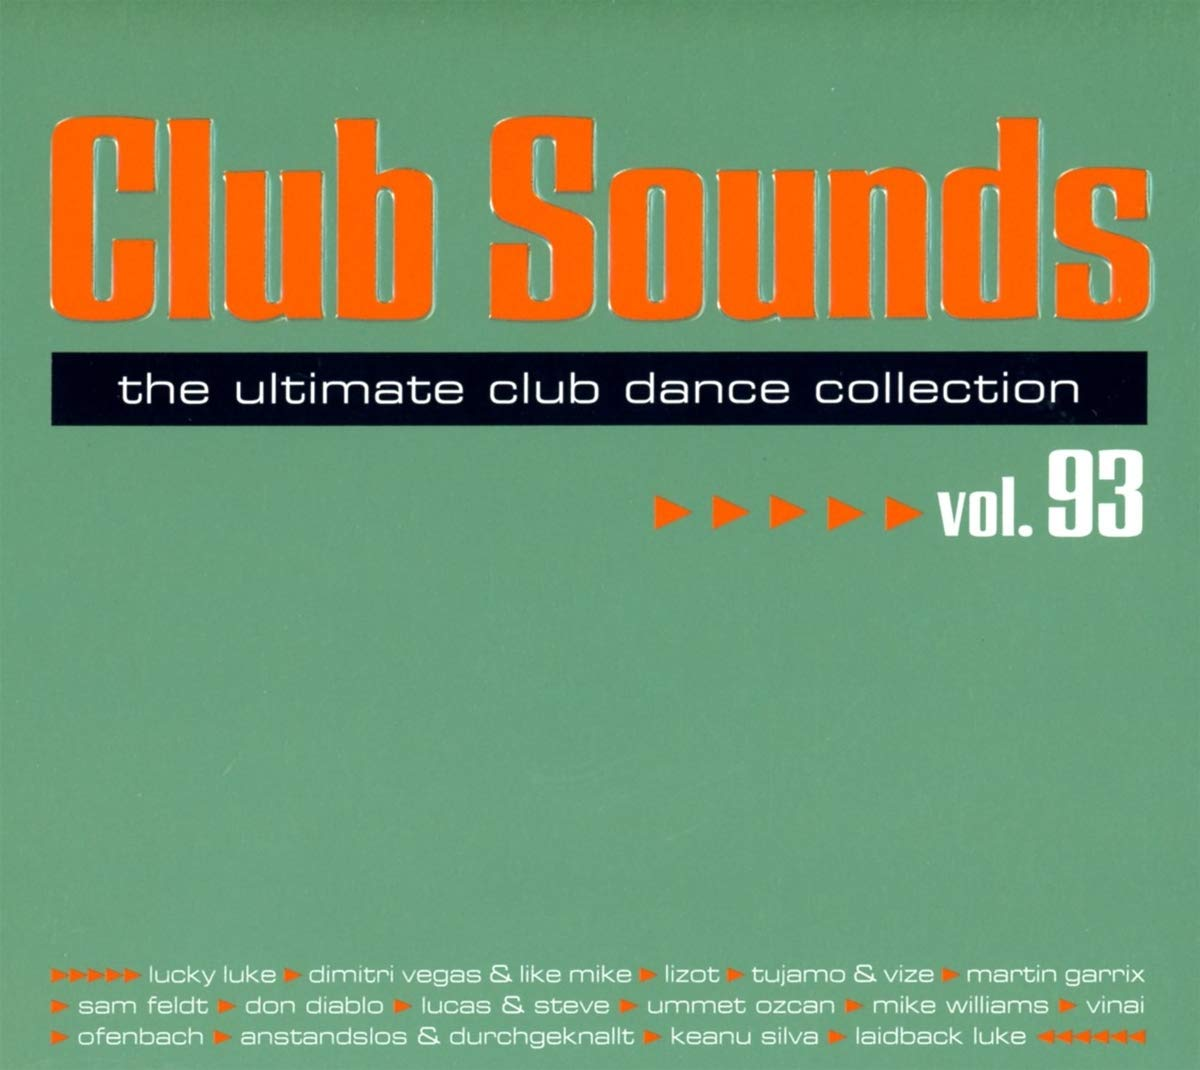 Club Sounds 93